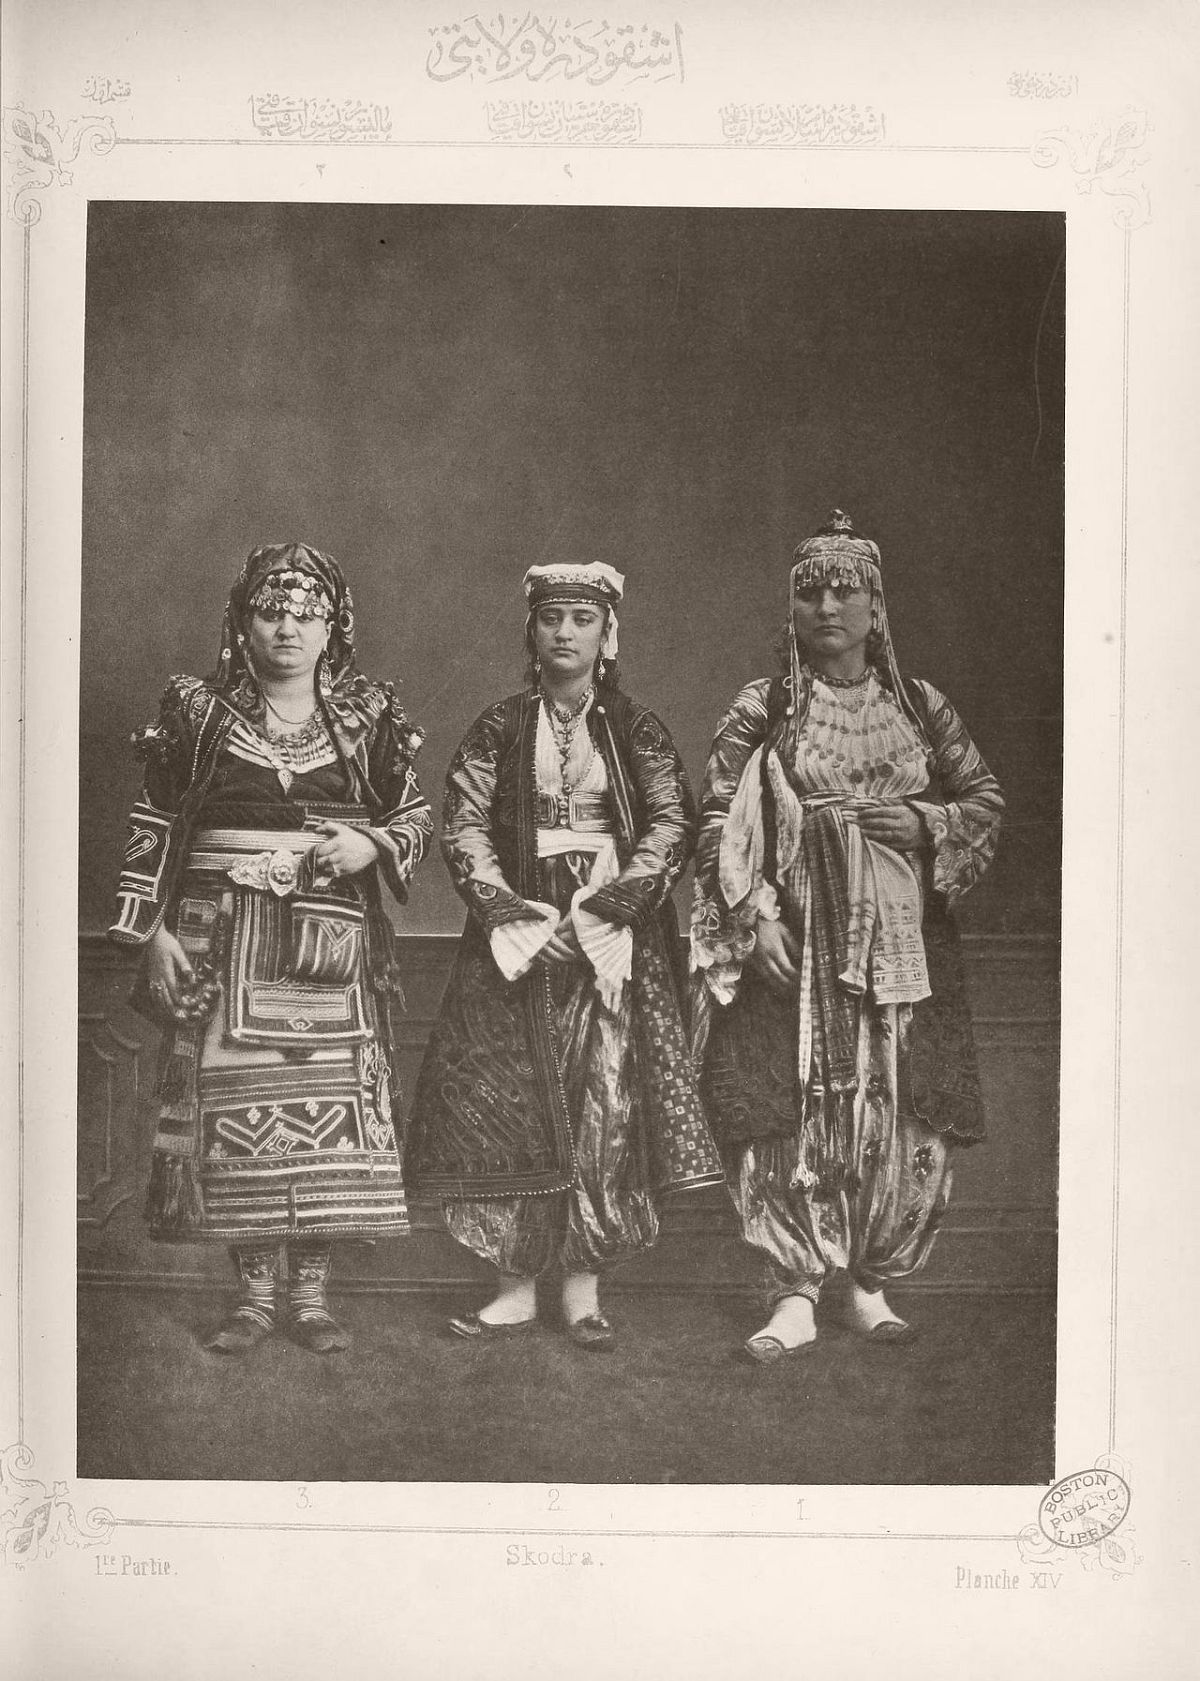 1: Muslim lady from Shkodër 2. Christian lady from Shkodër 3. Peasant woman from Malissor